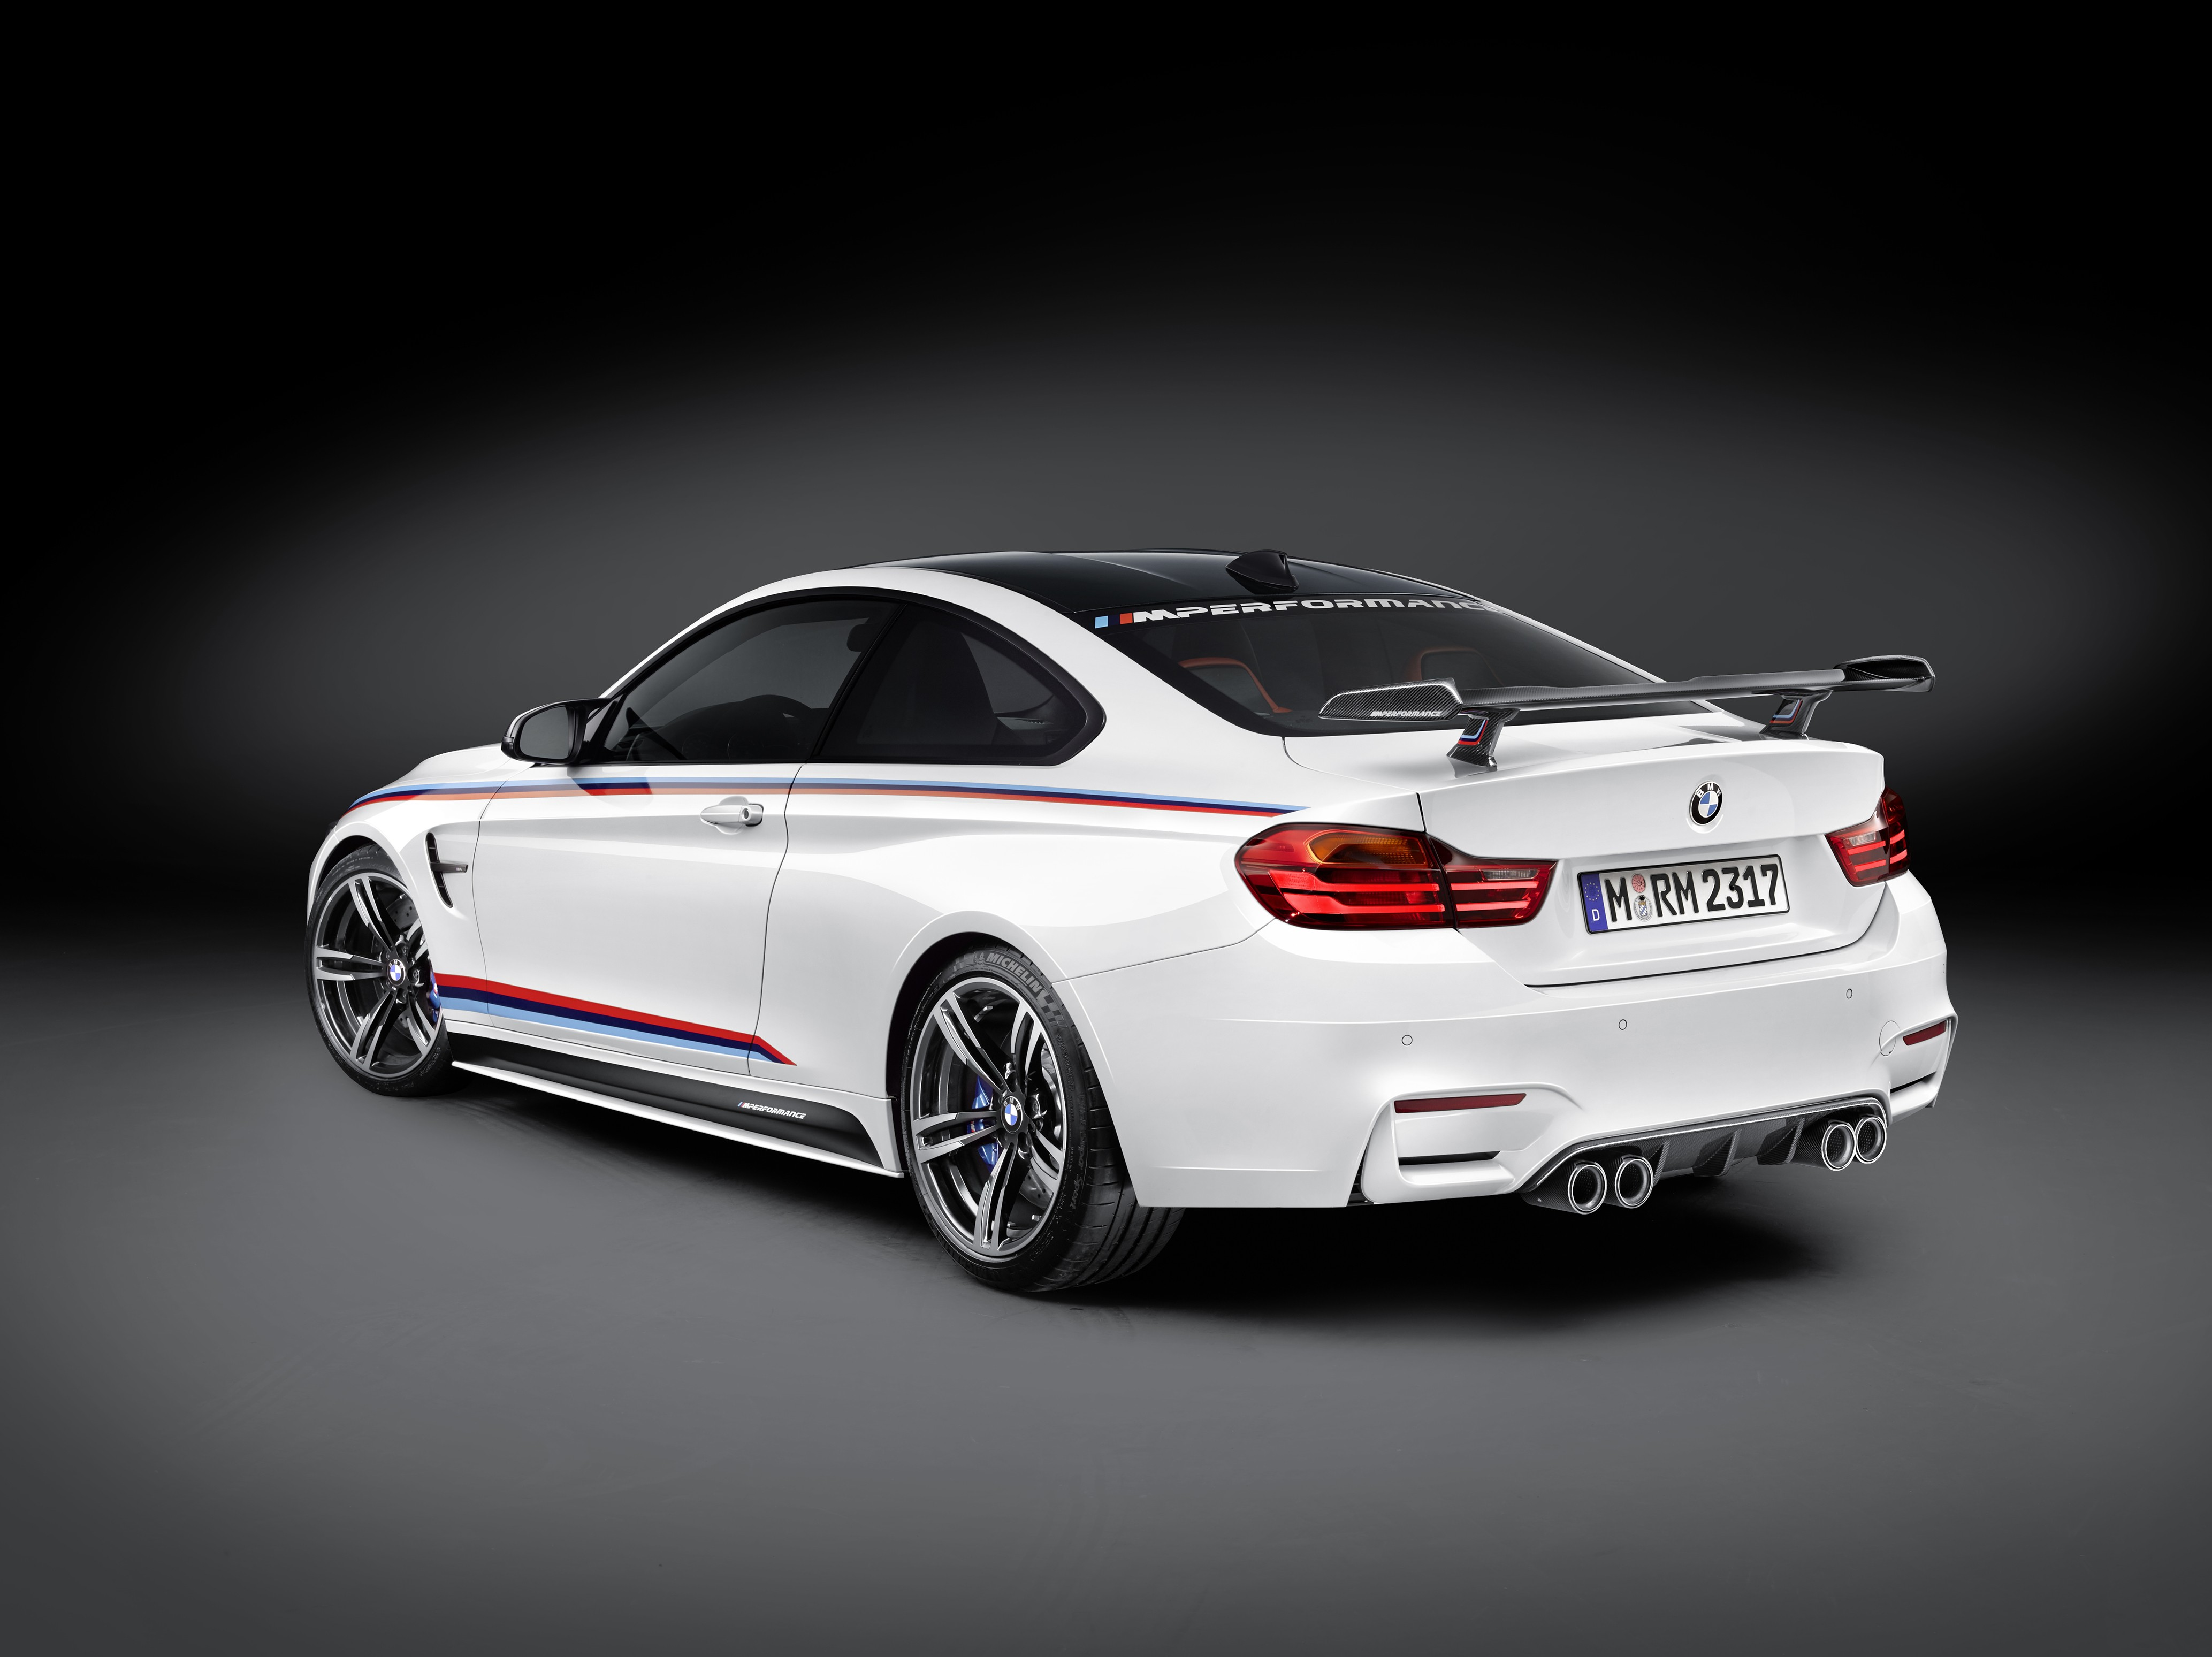 new-bmw-m4-m-performance-parts-introduced-at-sema-2015-including-cfrp-wing-photo-gallery_2